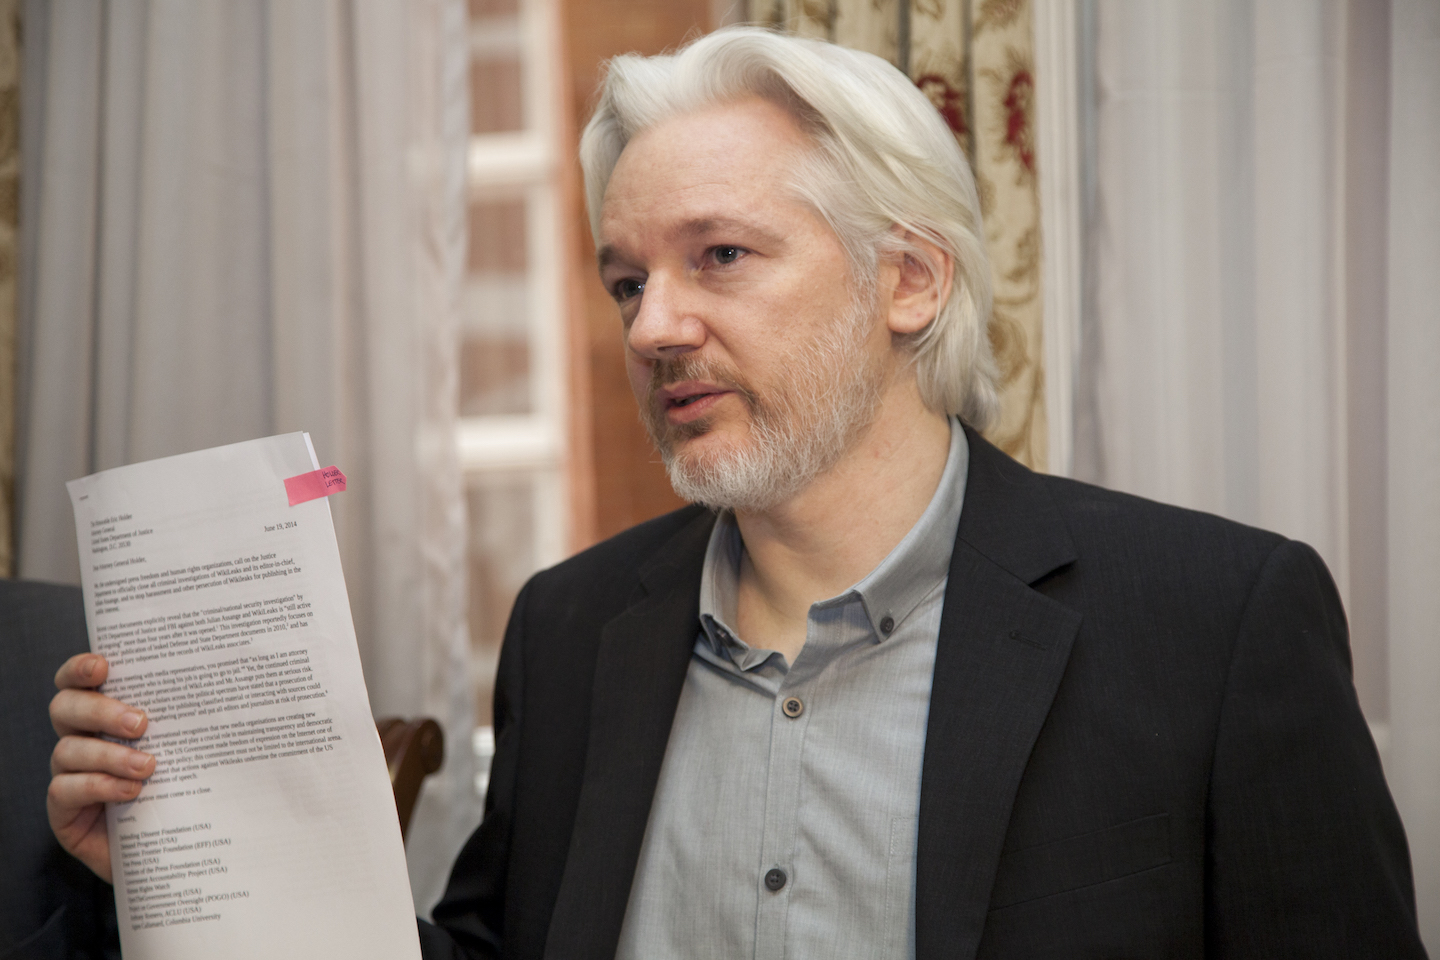 Feds plan on arresting WikiLeaks' Julian Assange; Shouldn't they also arrest these reporters from NY Times, WaPo, The Guardian and CNN?